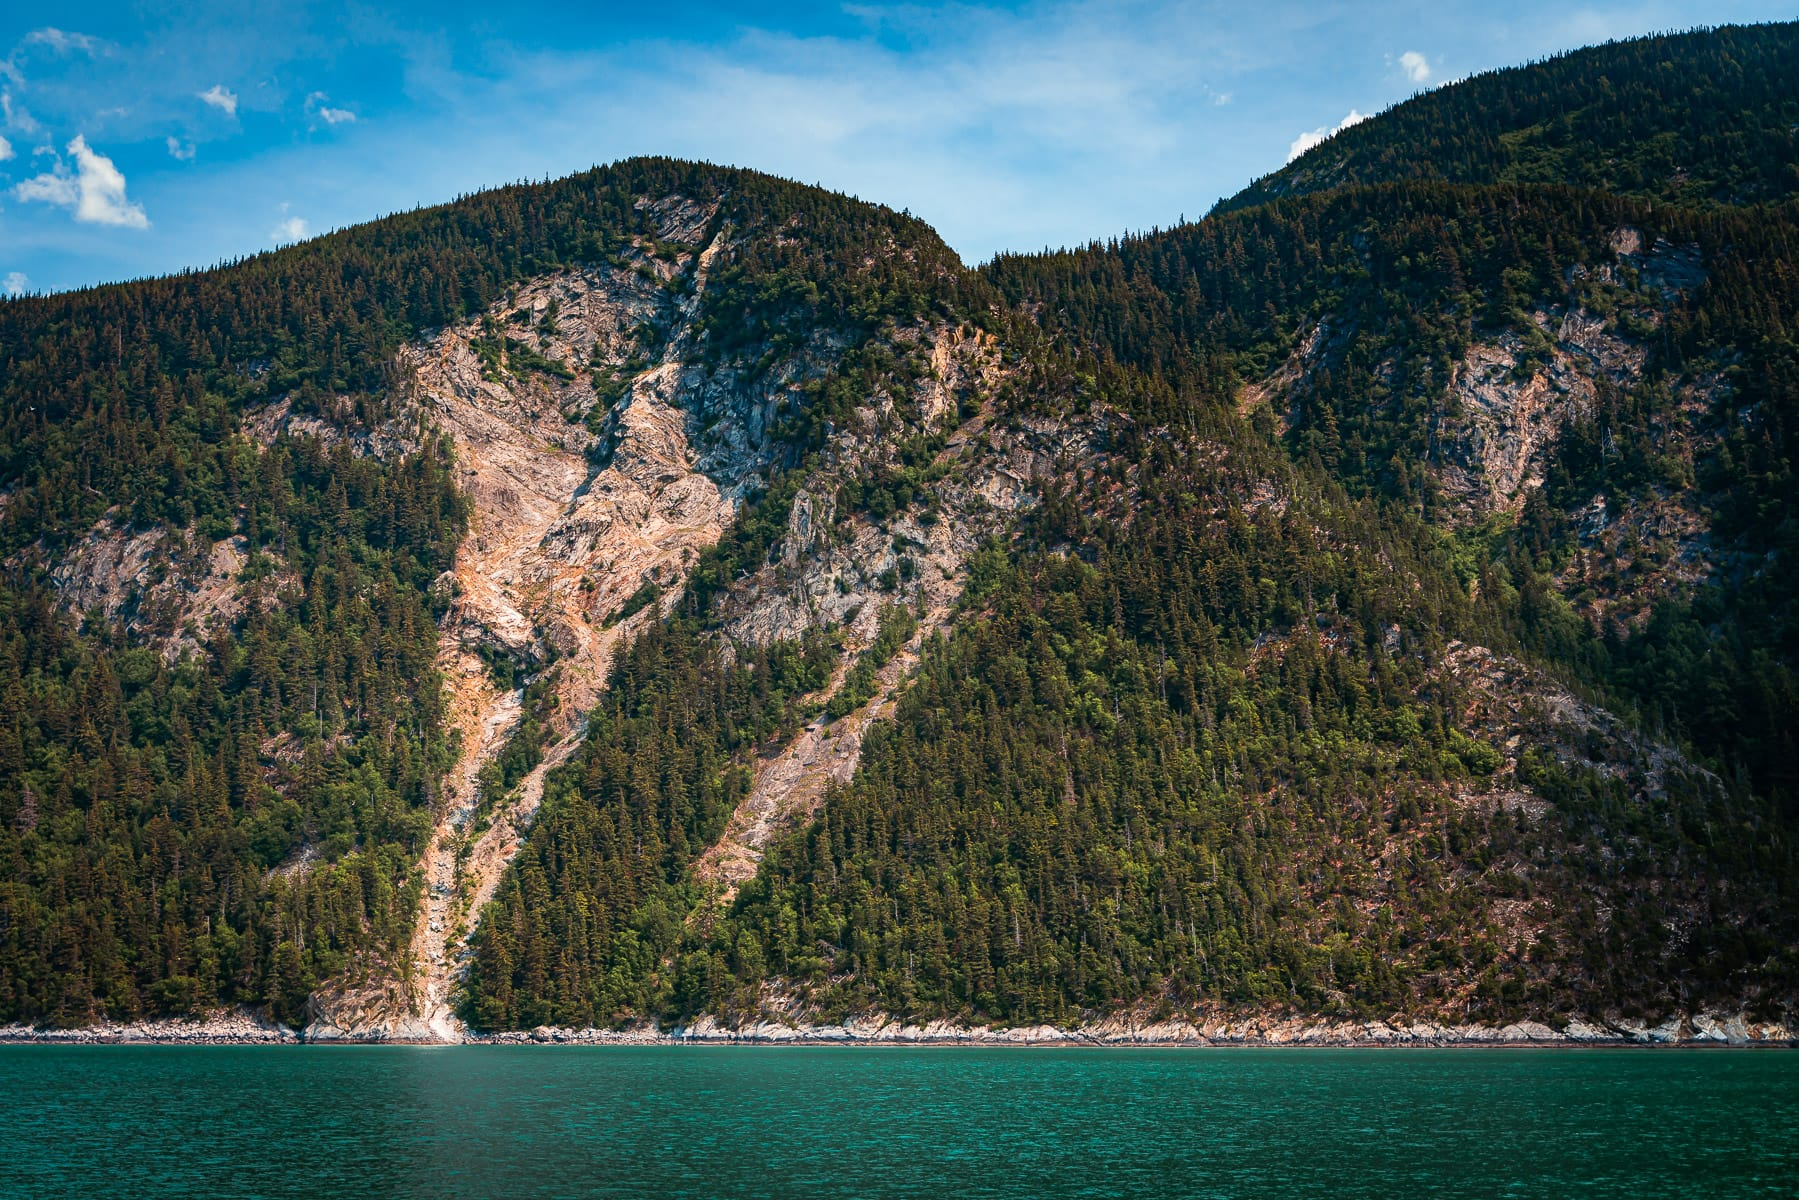 A collapsed mountainside along Taiya Inlet near Skagway, Alaska.